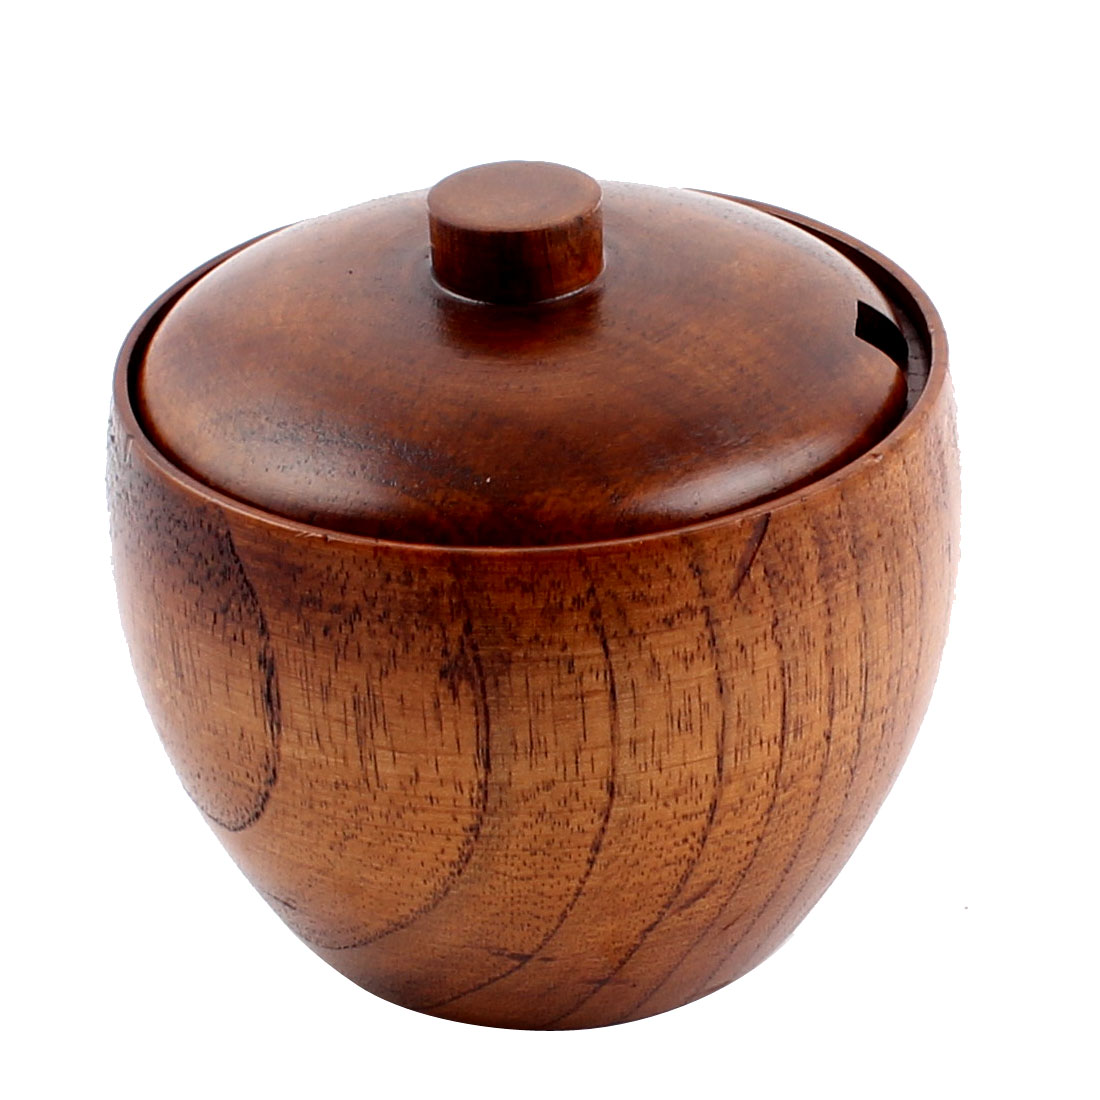 9cm Diameter Wooden Round Salt Pepper Mustard Cruet Pot Holder Container Brown